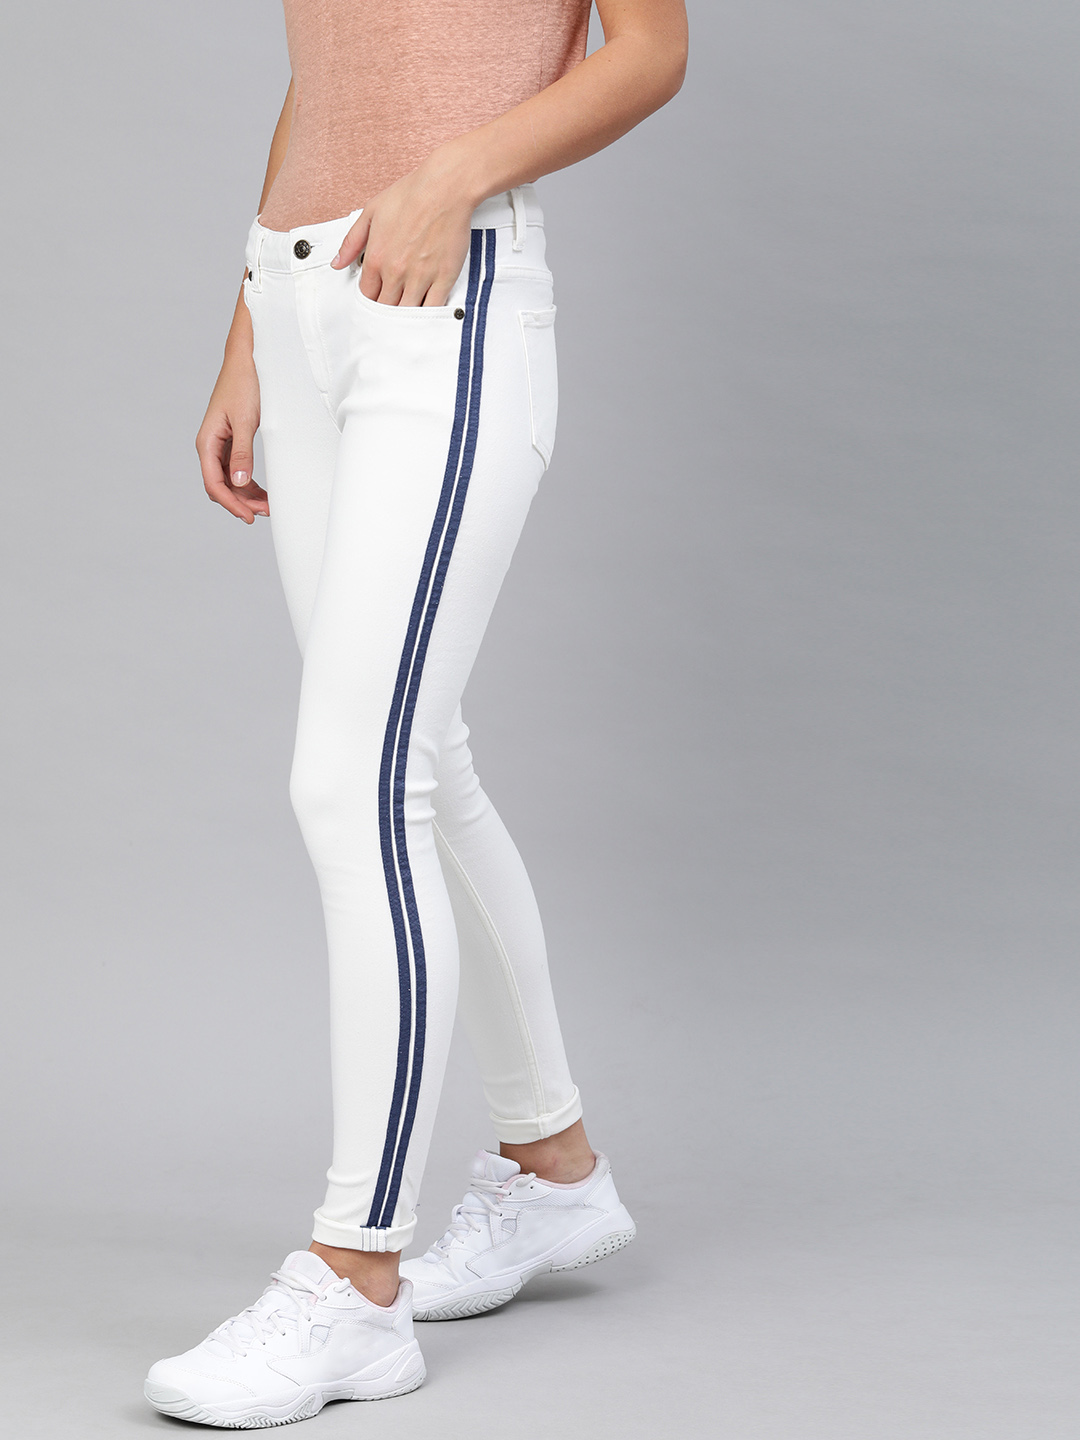 Enviously Young | Enviously Young Mid Rise White Jeans with Sidetape